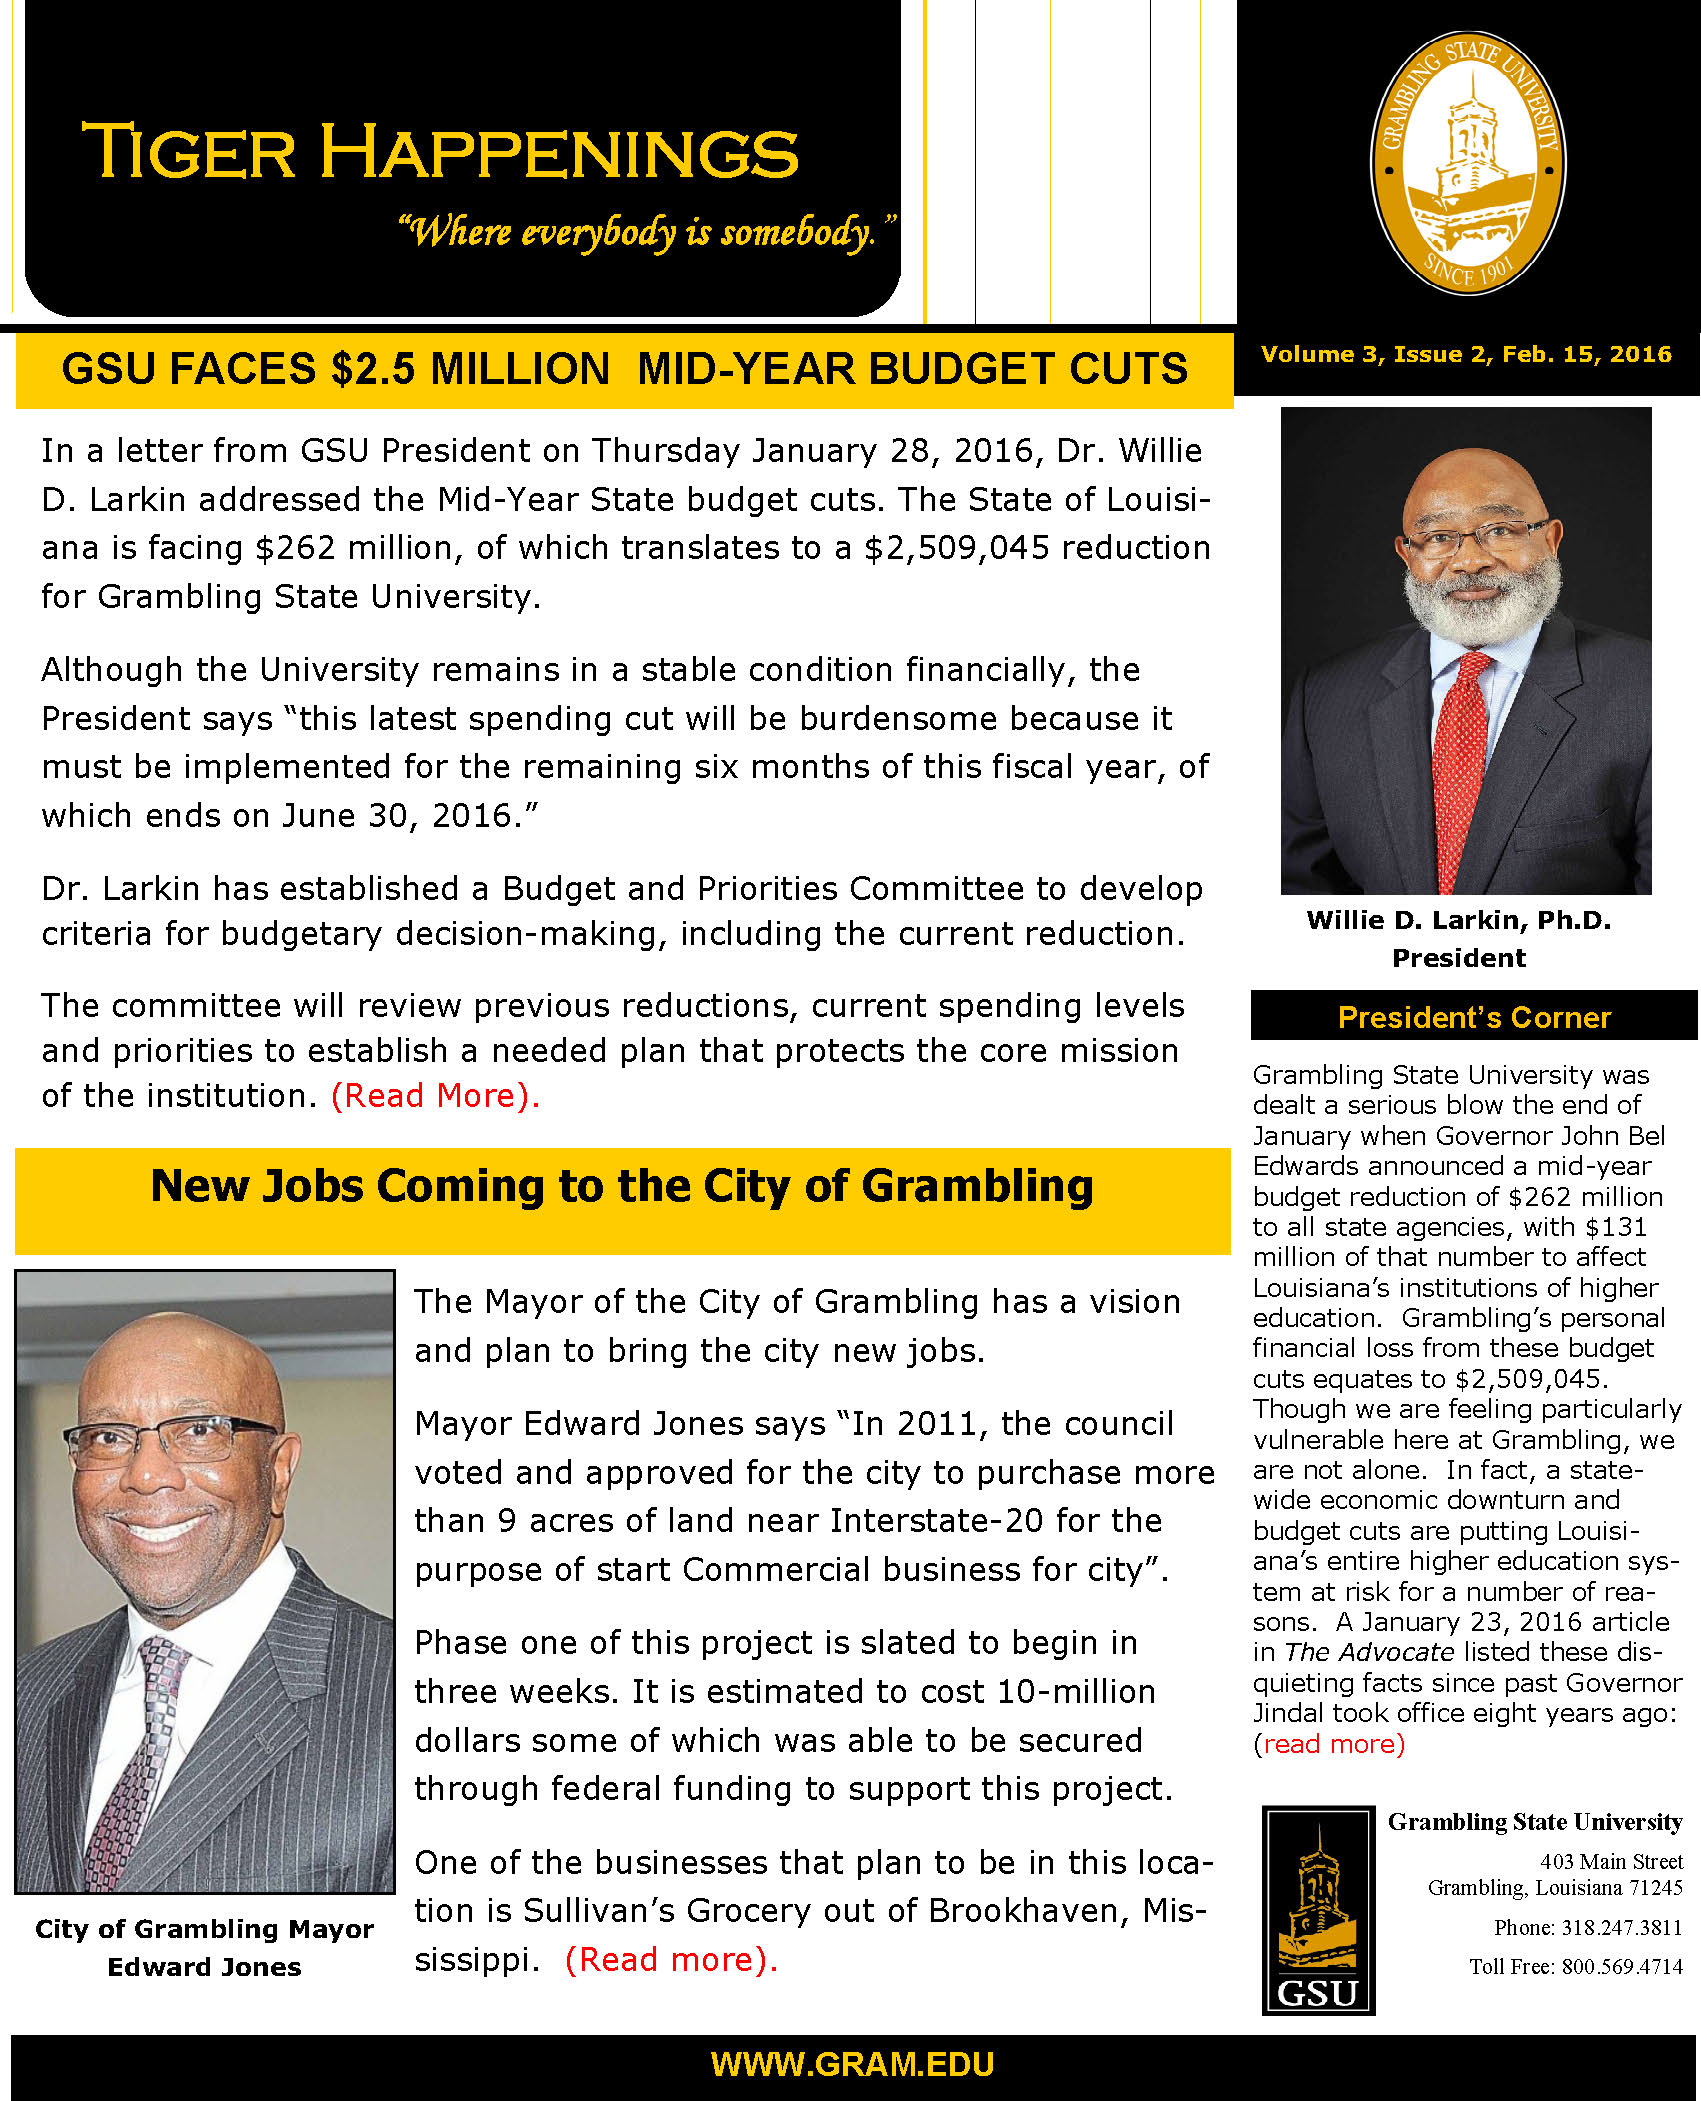 Tiger Happenings Newsletter, Volume 3, Issue 2, February 15, 2016